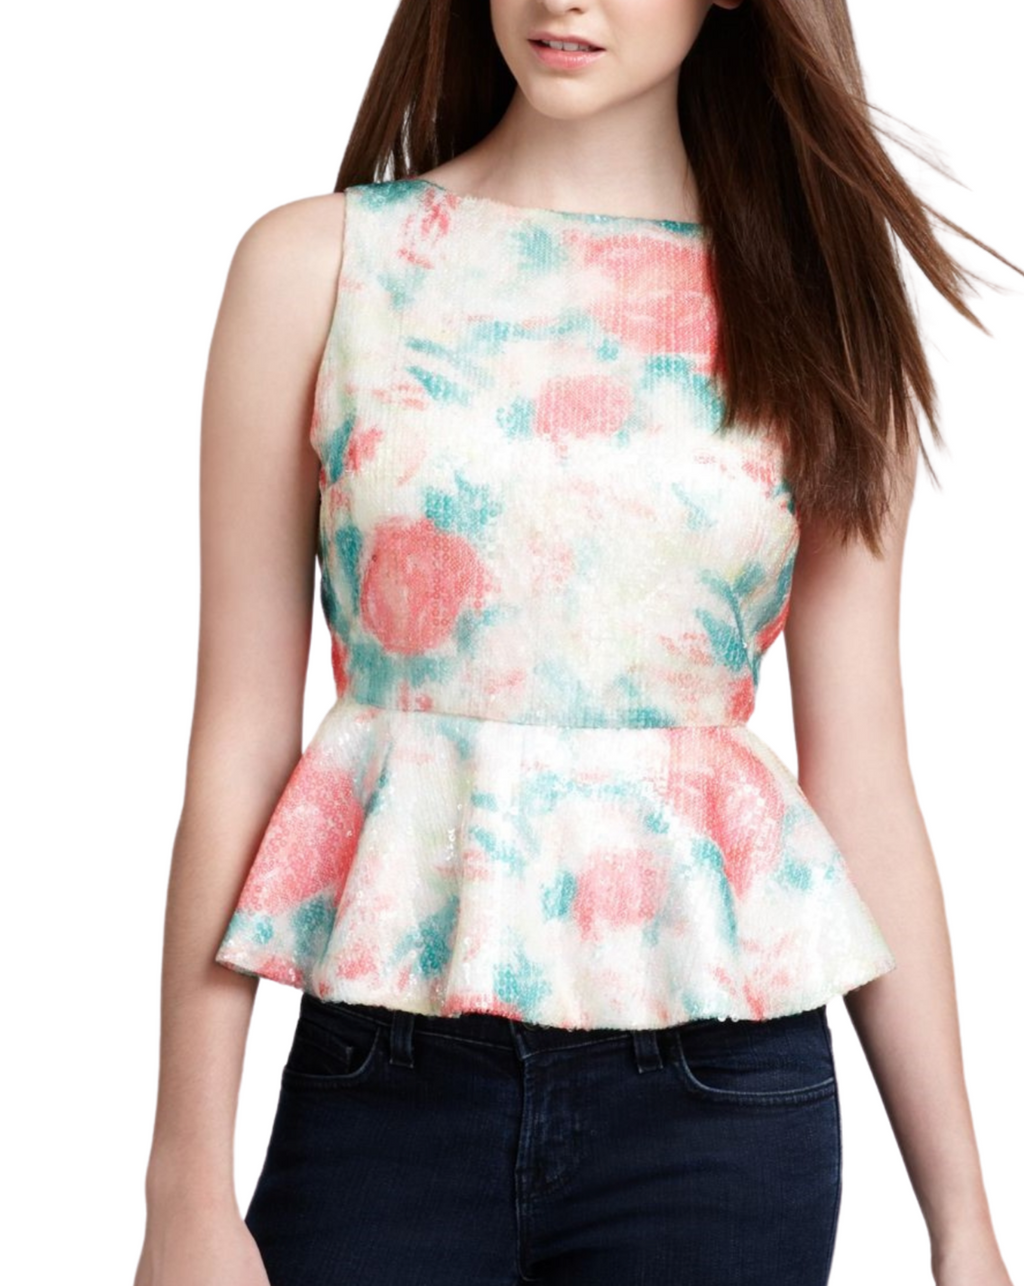 Alice + Olivia Floral Sequin Peplum Top